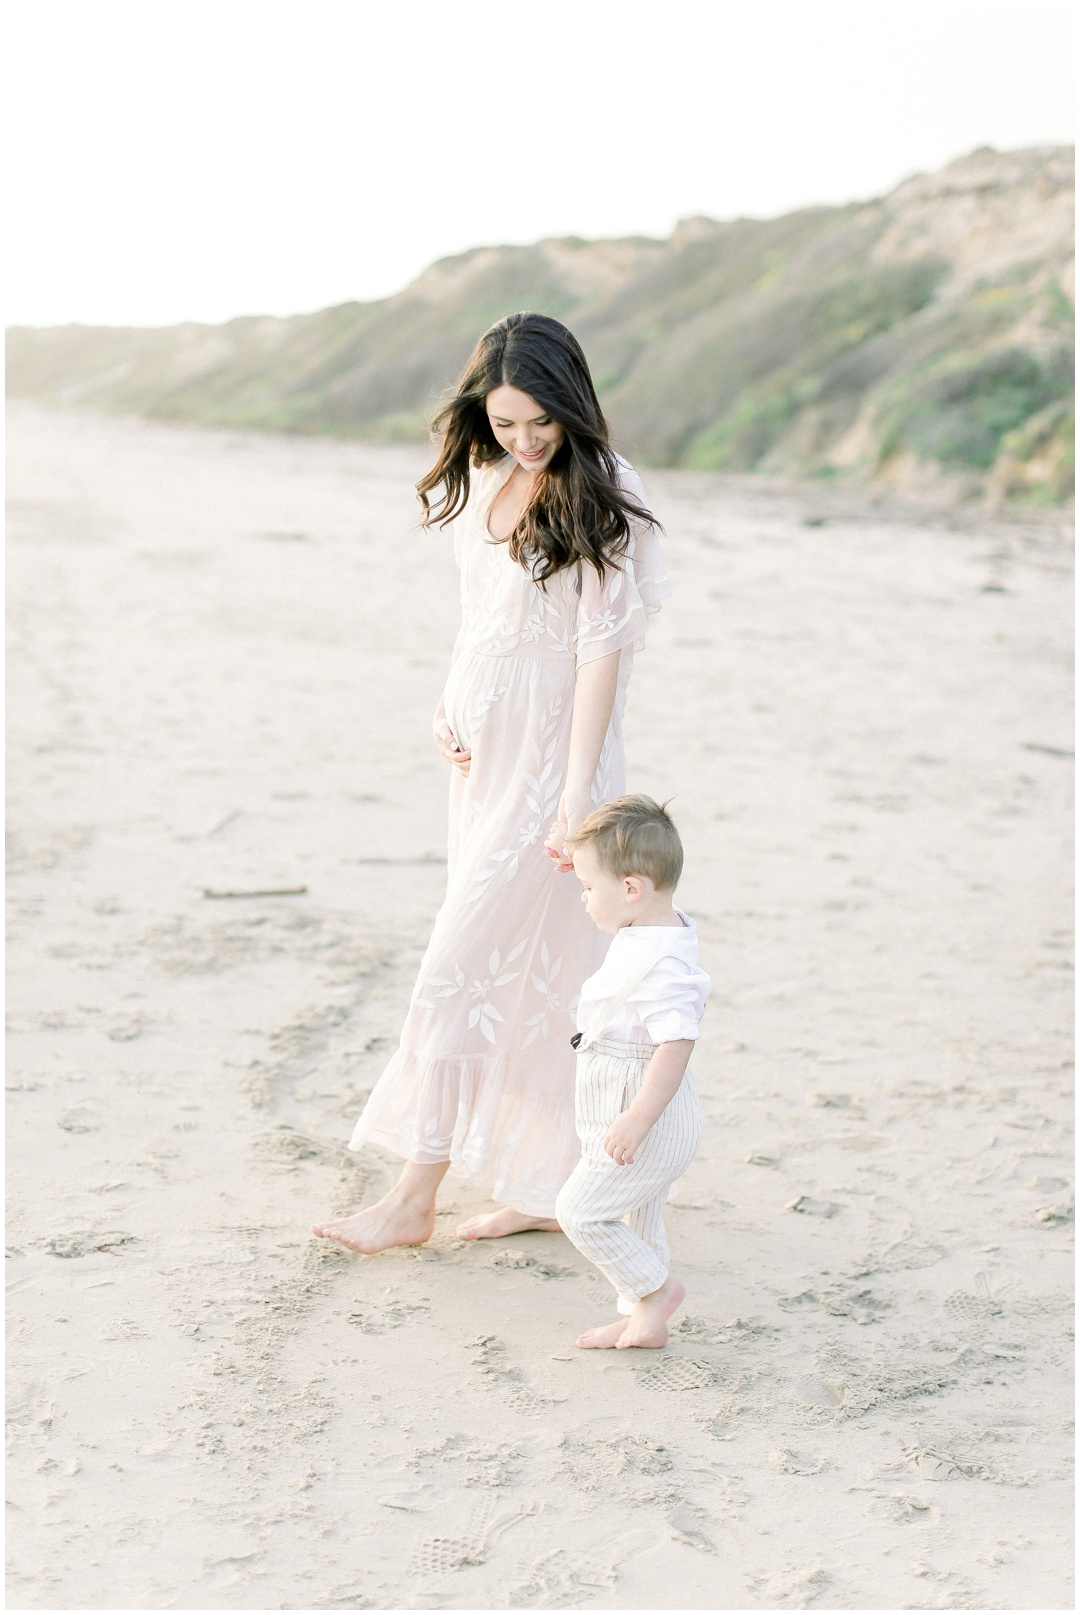 Newport_Beach_Newborn_Light_Airy_Natural_Photographer_Newport_Beach_Photographer_Orange_County_Family_Photographer_Cori_Kleckner_Photography_Huntington_Beach_Photographer_Family_OC_Newborn_Danielle_Lawley_Parker_Maternity_Family_Jordan_Lawley_3369.jpg